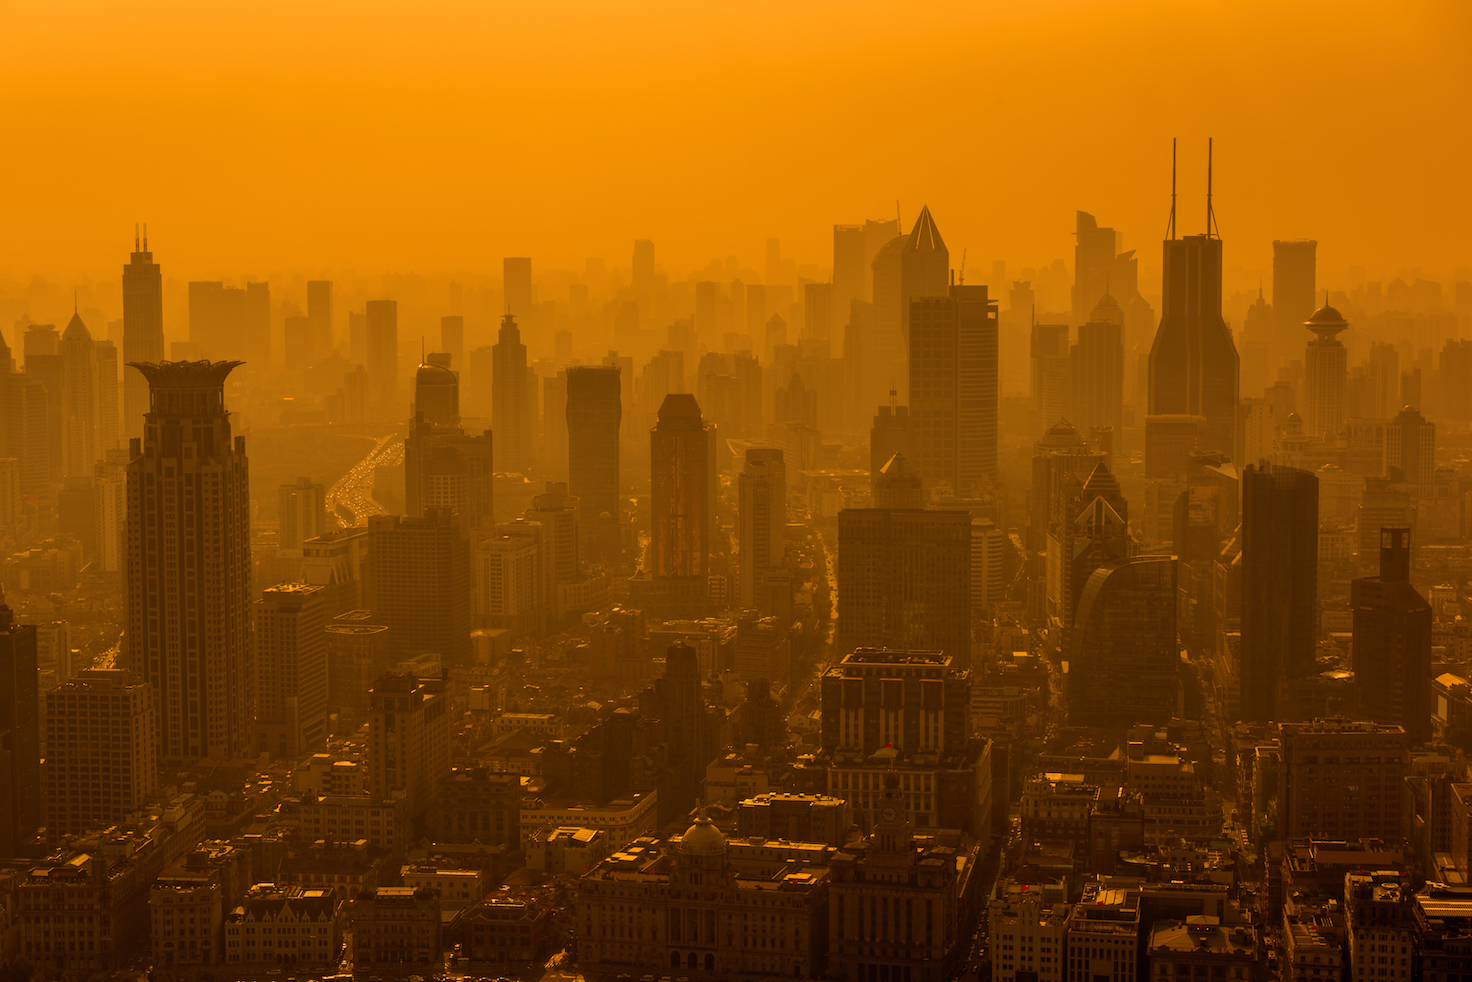 A new analysis has found that air pollution is responsible for 10.7 million cases of chronic kidney disease (CKD) each year.